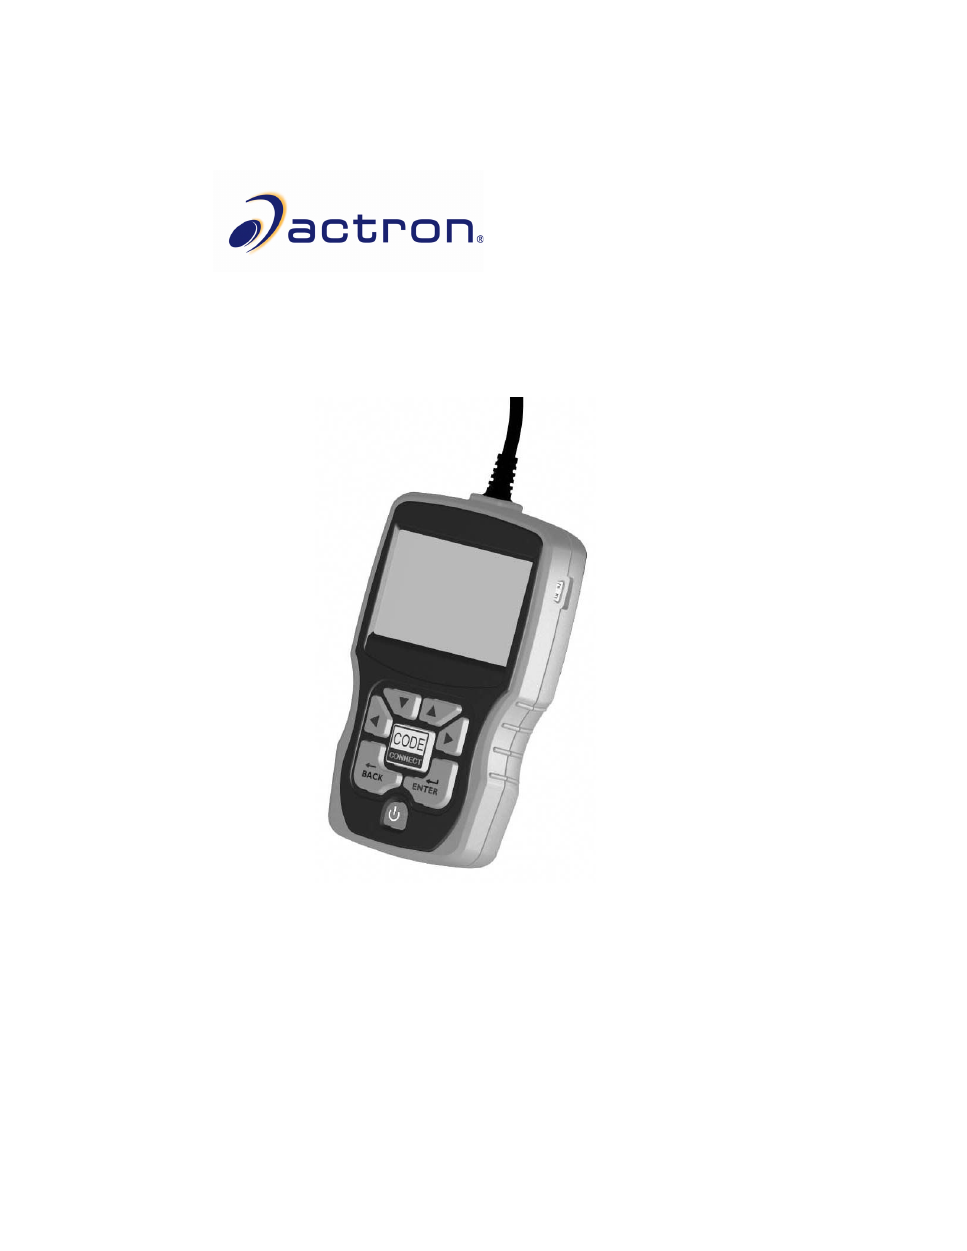 actron cp9580 instruction manual free pdf download 118 pages rh manualagent com Actron CP9575 Manual Actron Auto Scanner User Manual